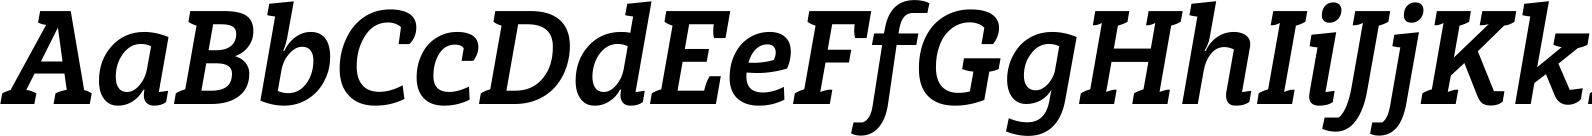 Achille II FY Bold Italic Font